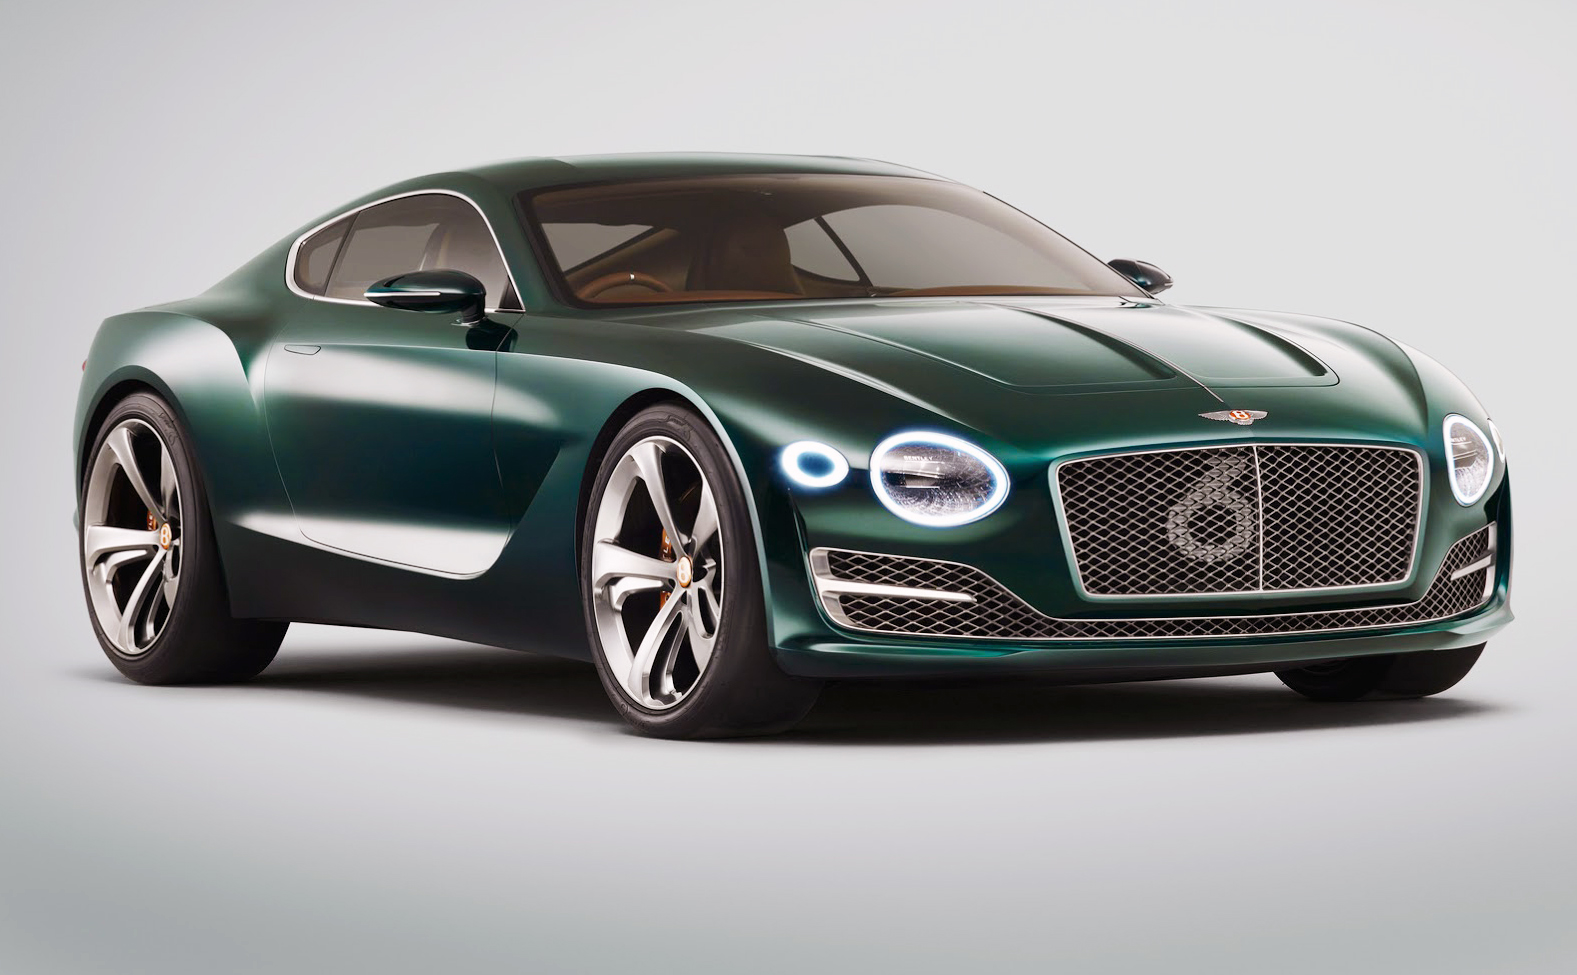 Bentley EXP 10 Speed 6 Concept: New Two-Seater Coming?